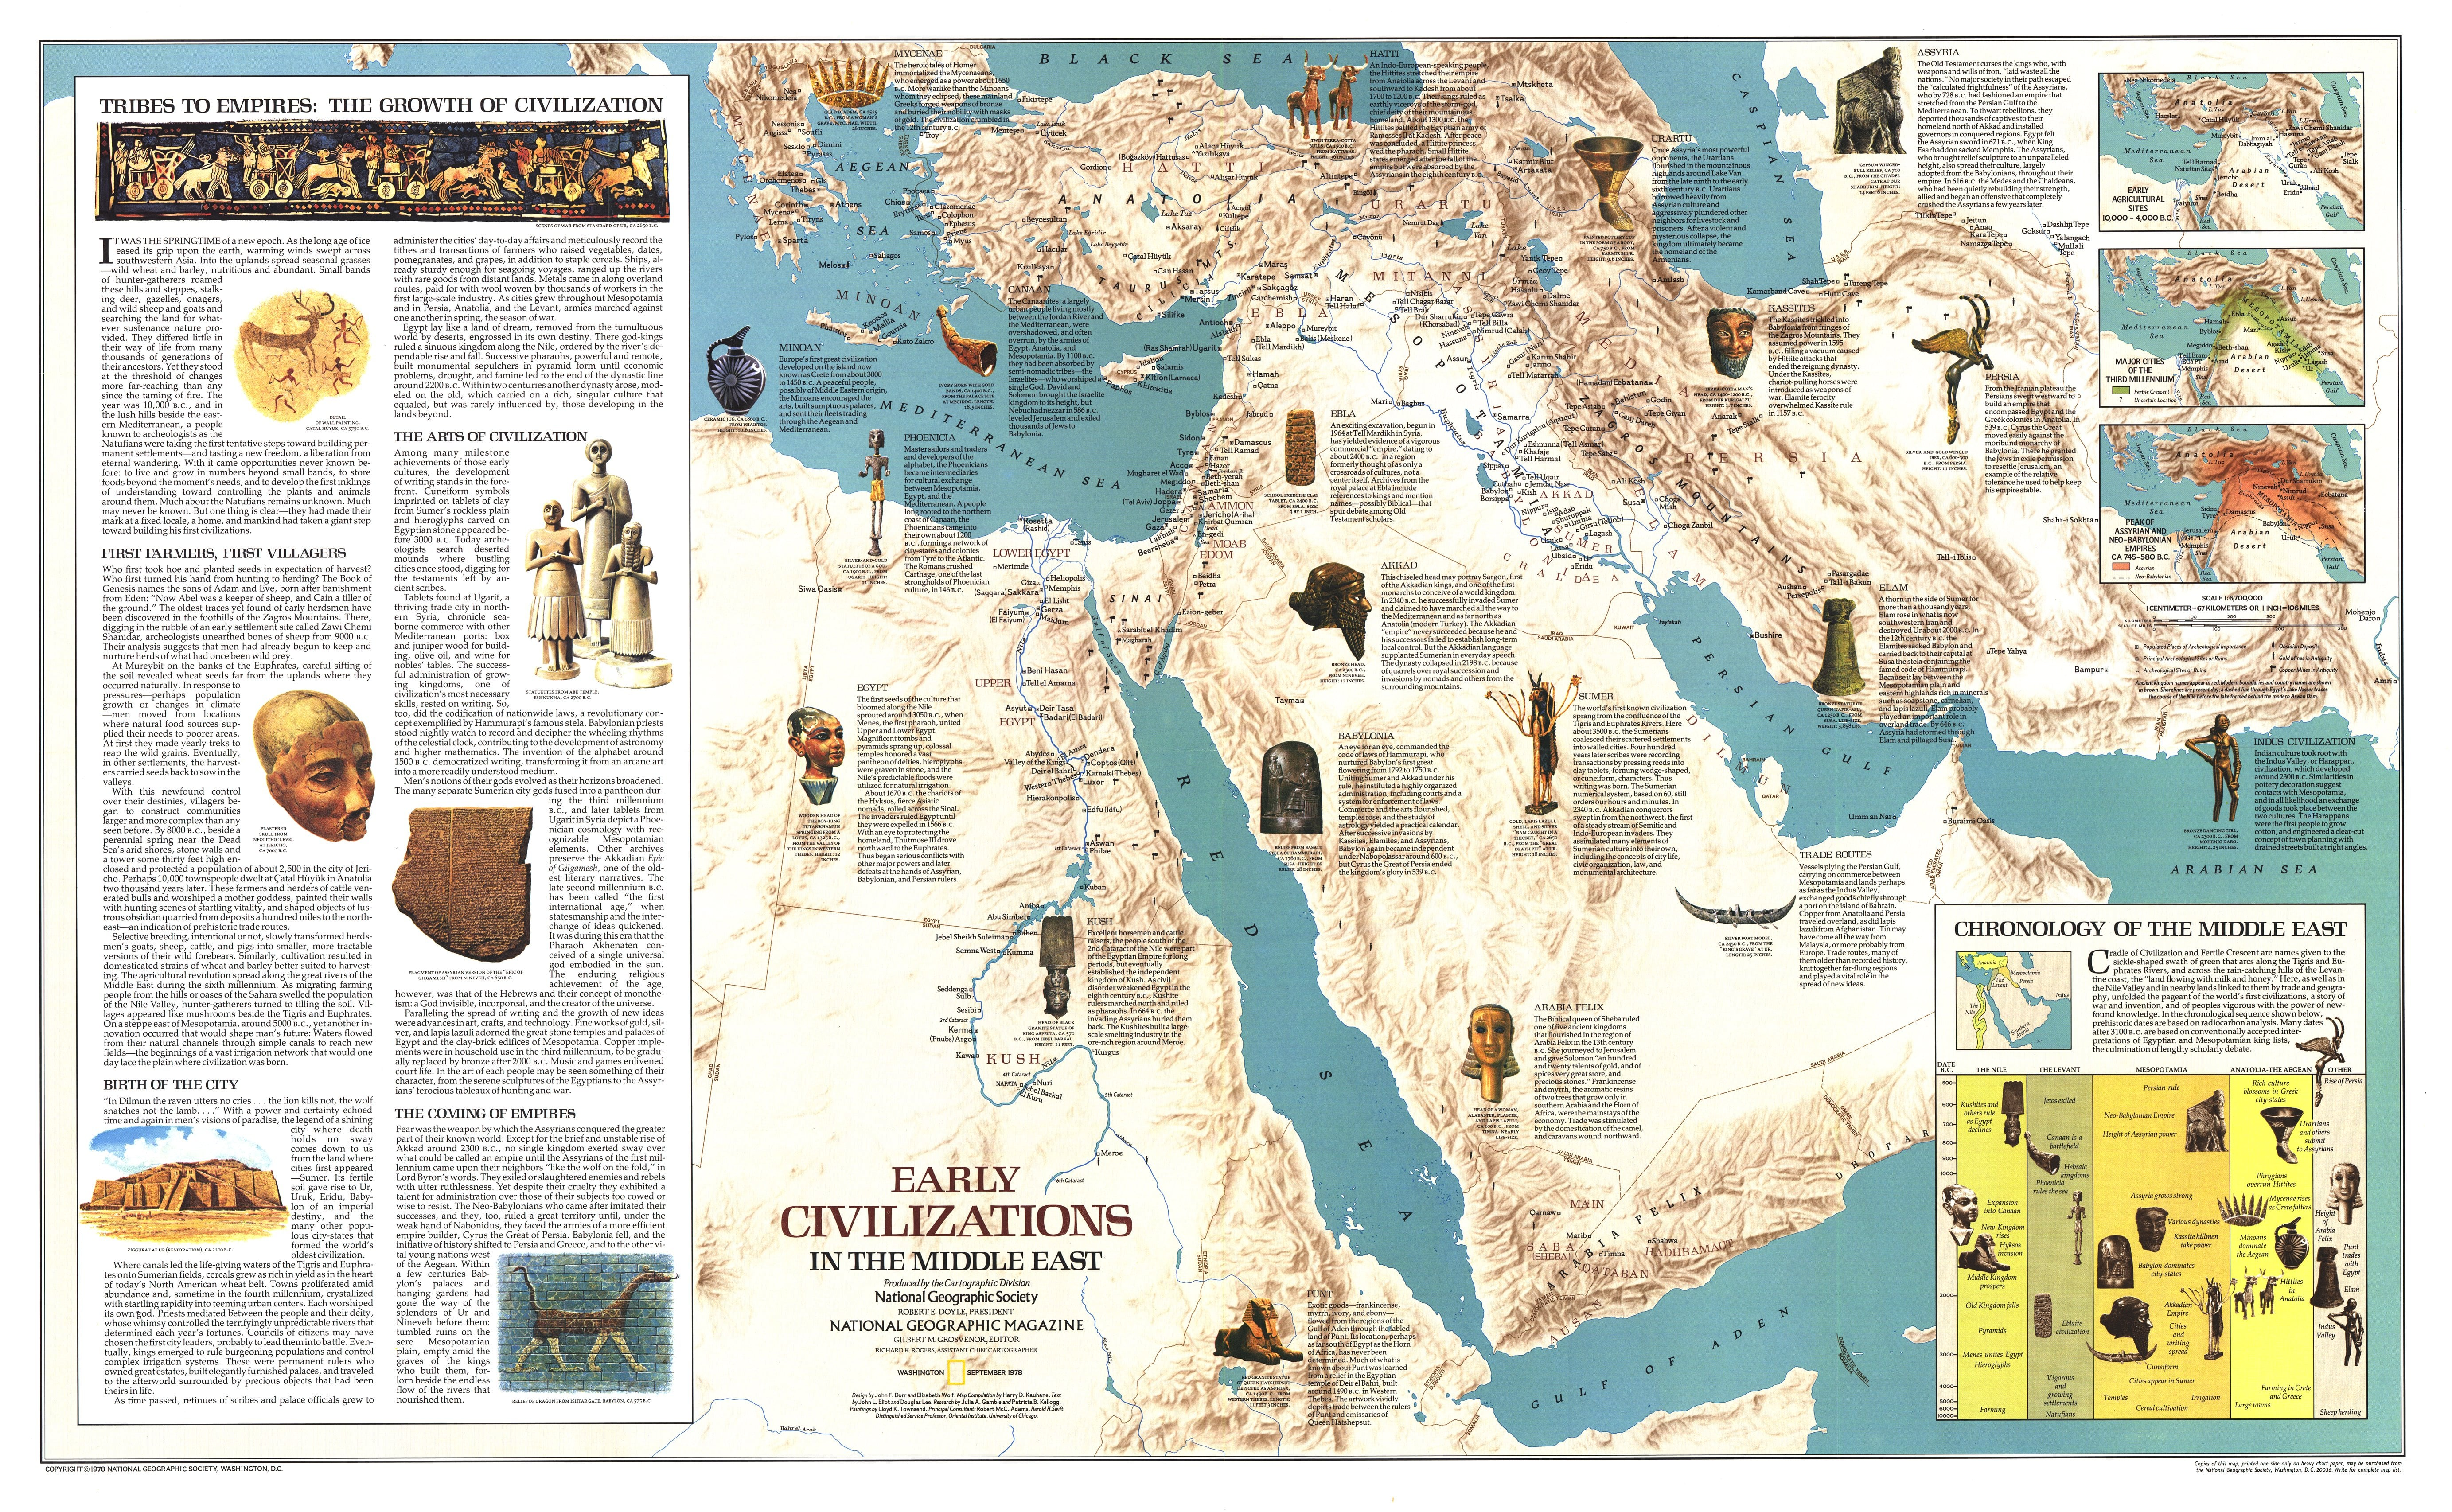 NGS 1978 Early Civilizations In The Middle East Map